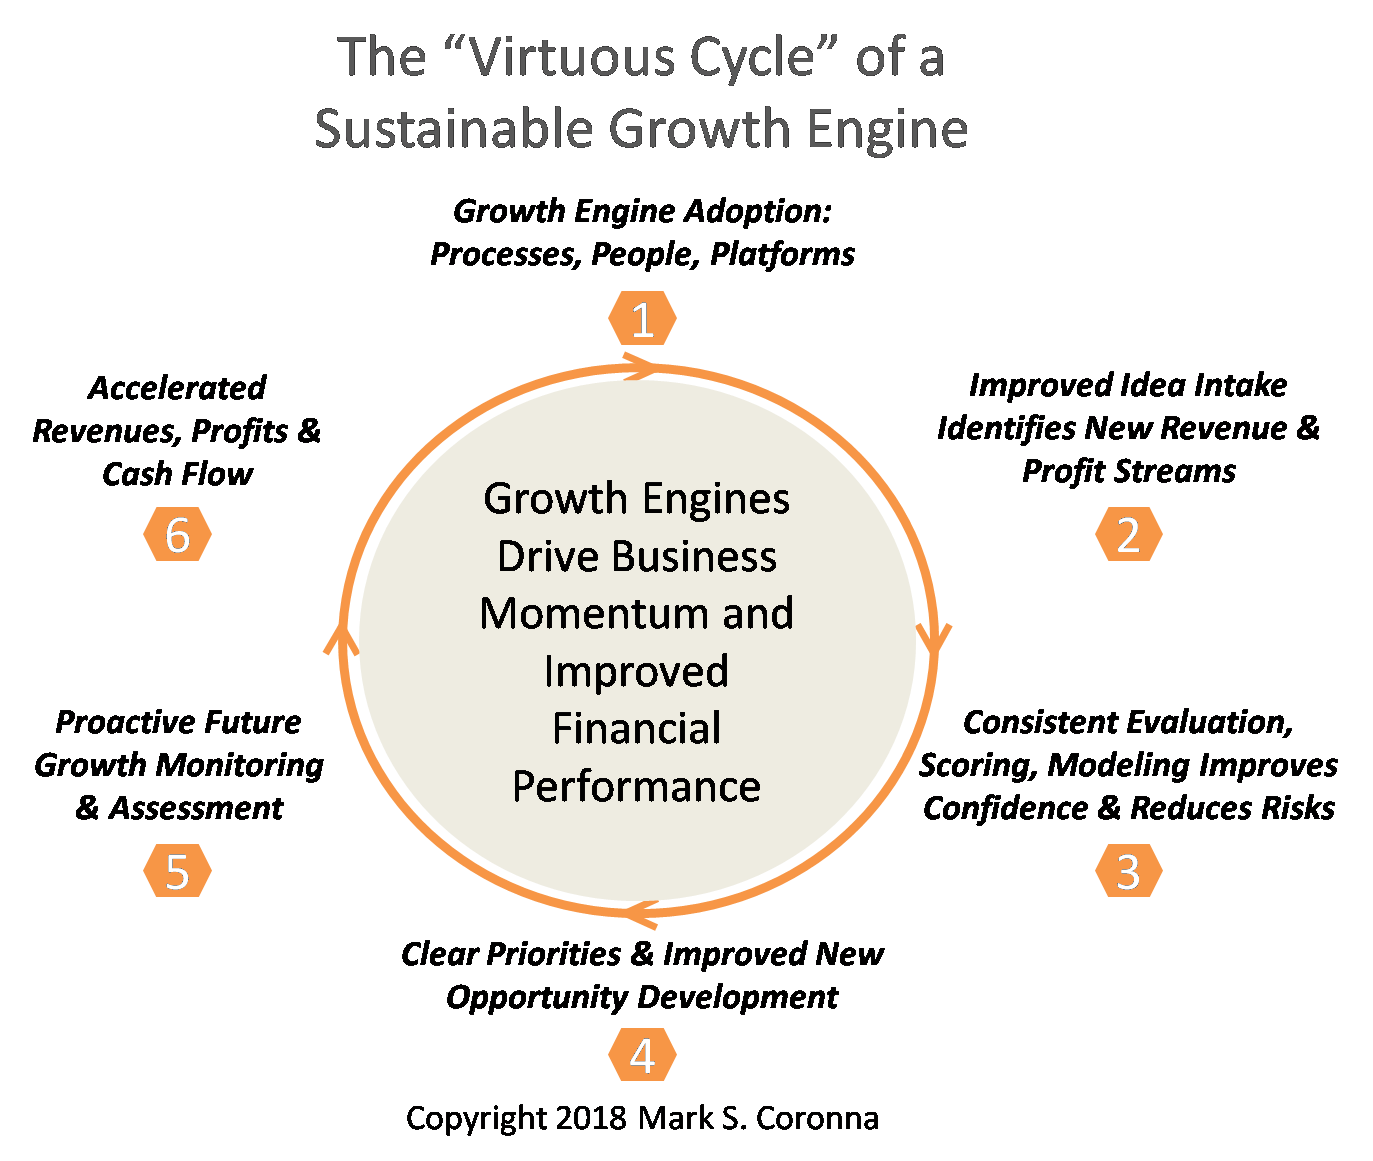 Virtuous Cycle of Sustainable Growth Engine